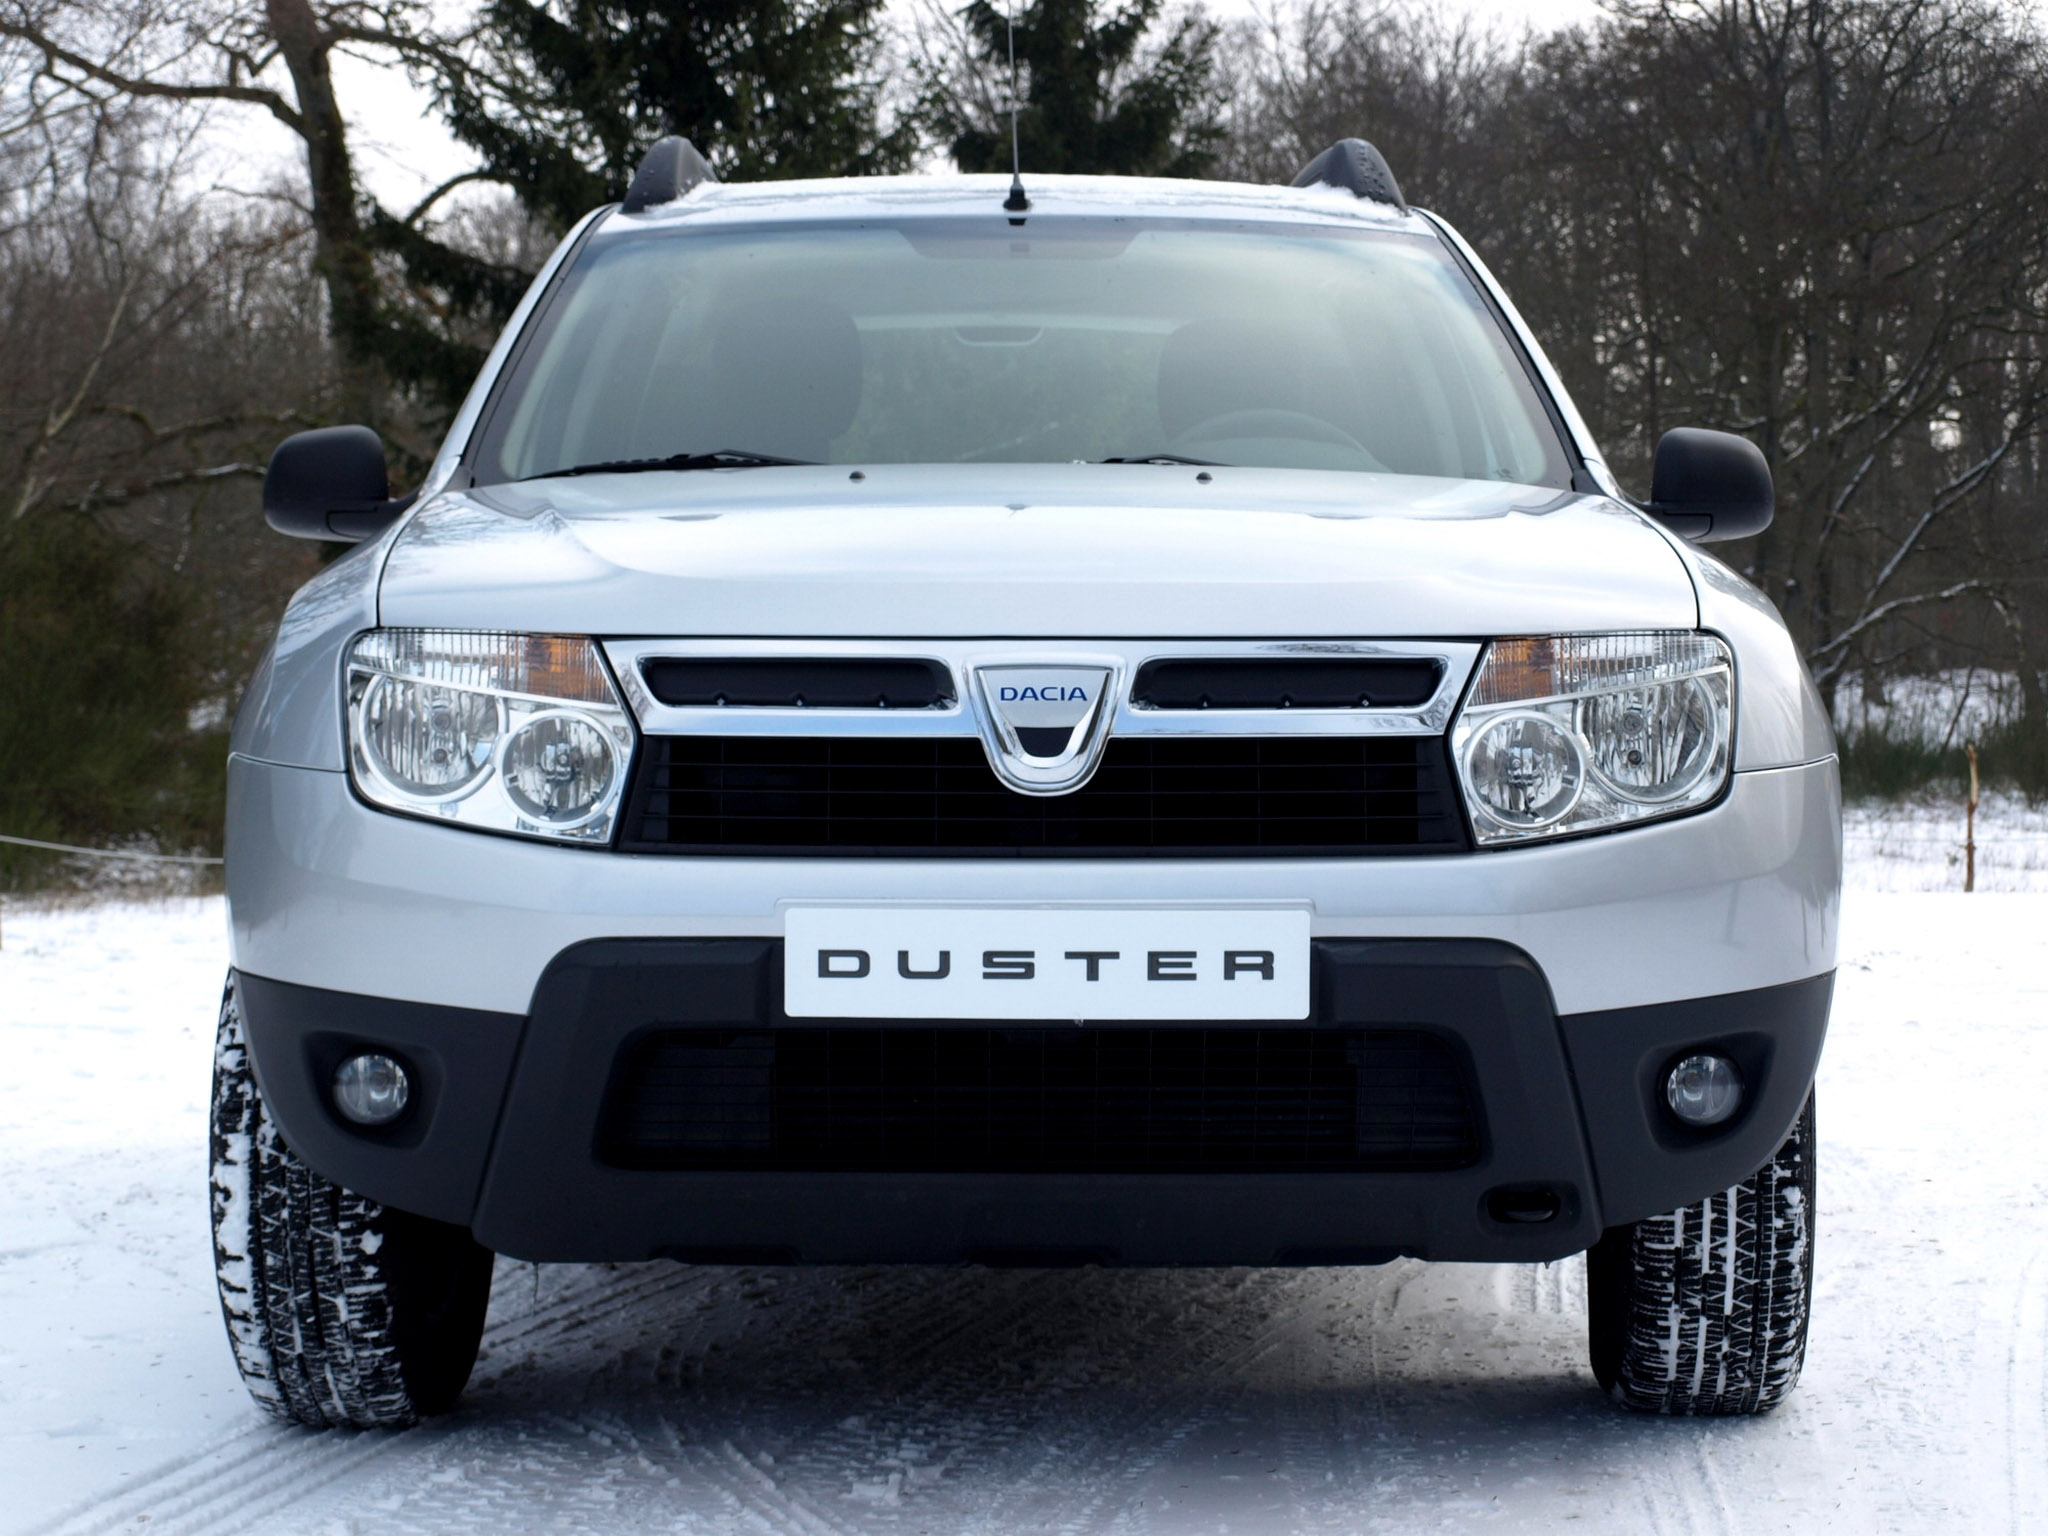 dacia duster 2010 dacia duster 2010 photo 31 car in. Black Bedroom Furniture Sets. Home Design Ideas